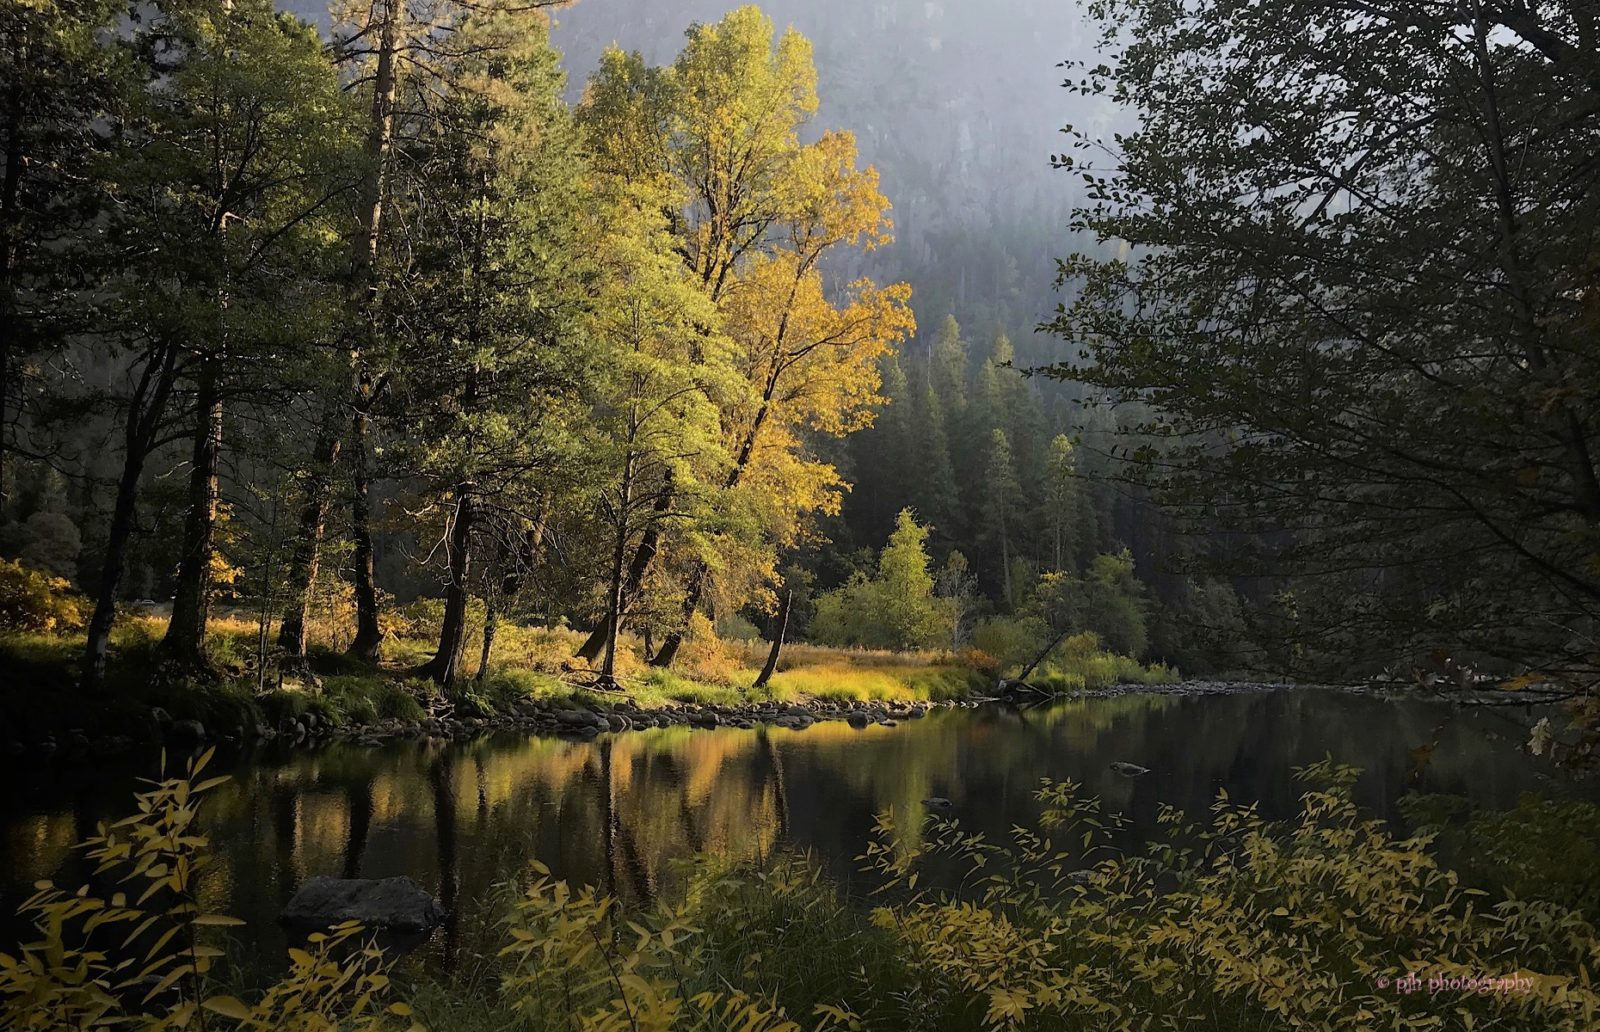 Autumn on the Merced River (Yosemite National Park)